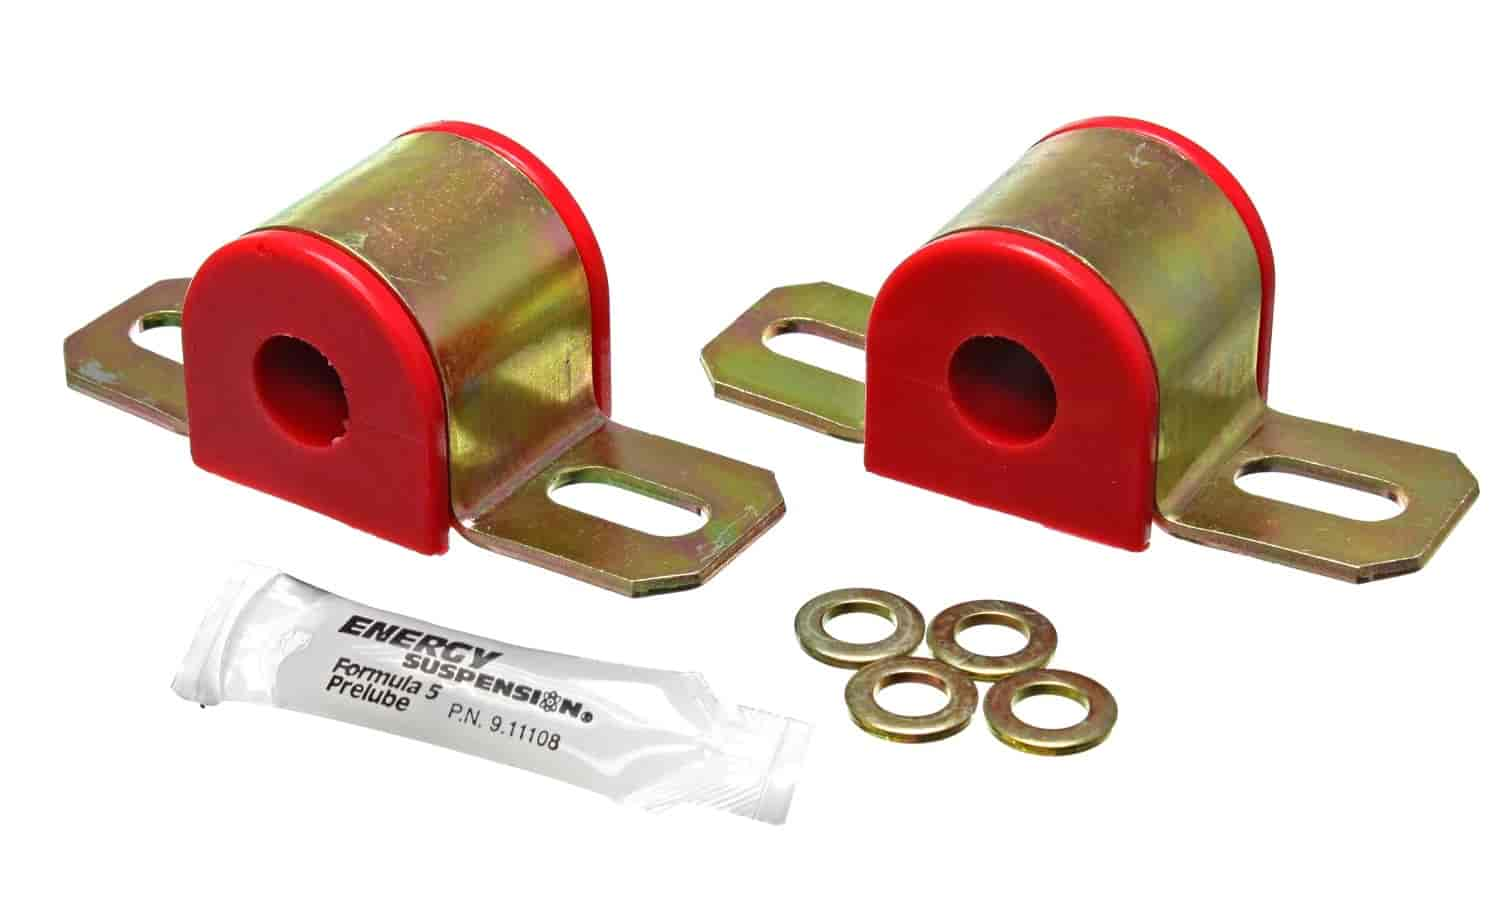 Energy Suspension 9-5103R - Energy Suspension Universal Non-Greaseable Sway Bar Bushings